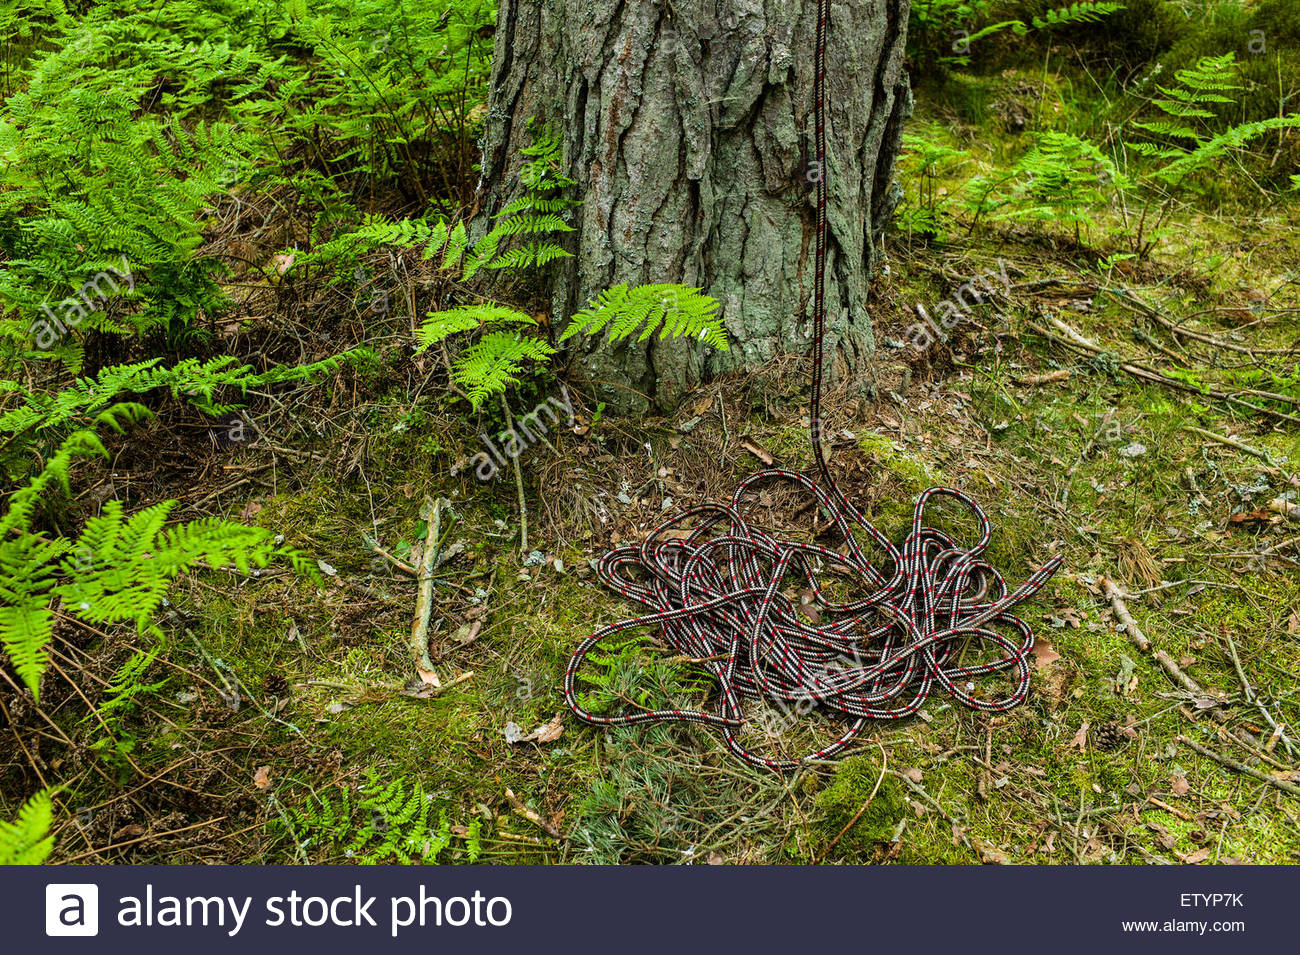 A climbing rope at the foot of a tree. - Stock Image